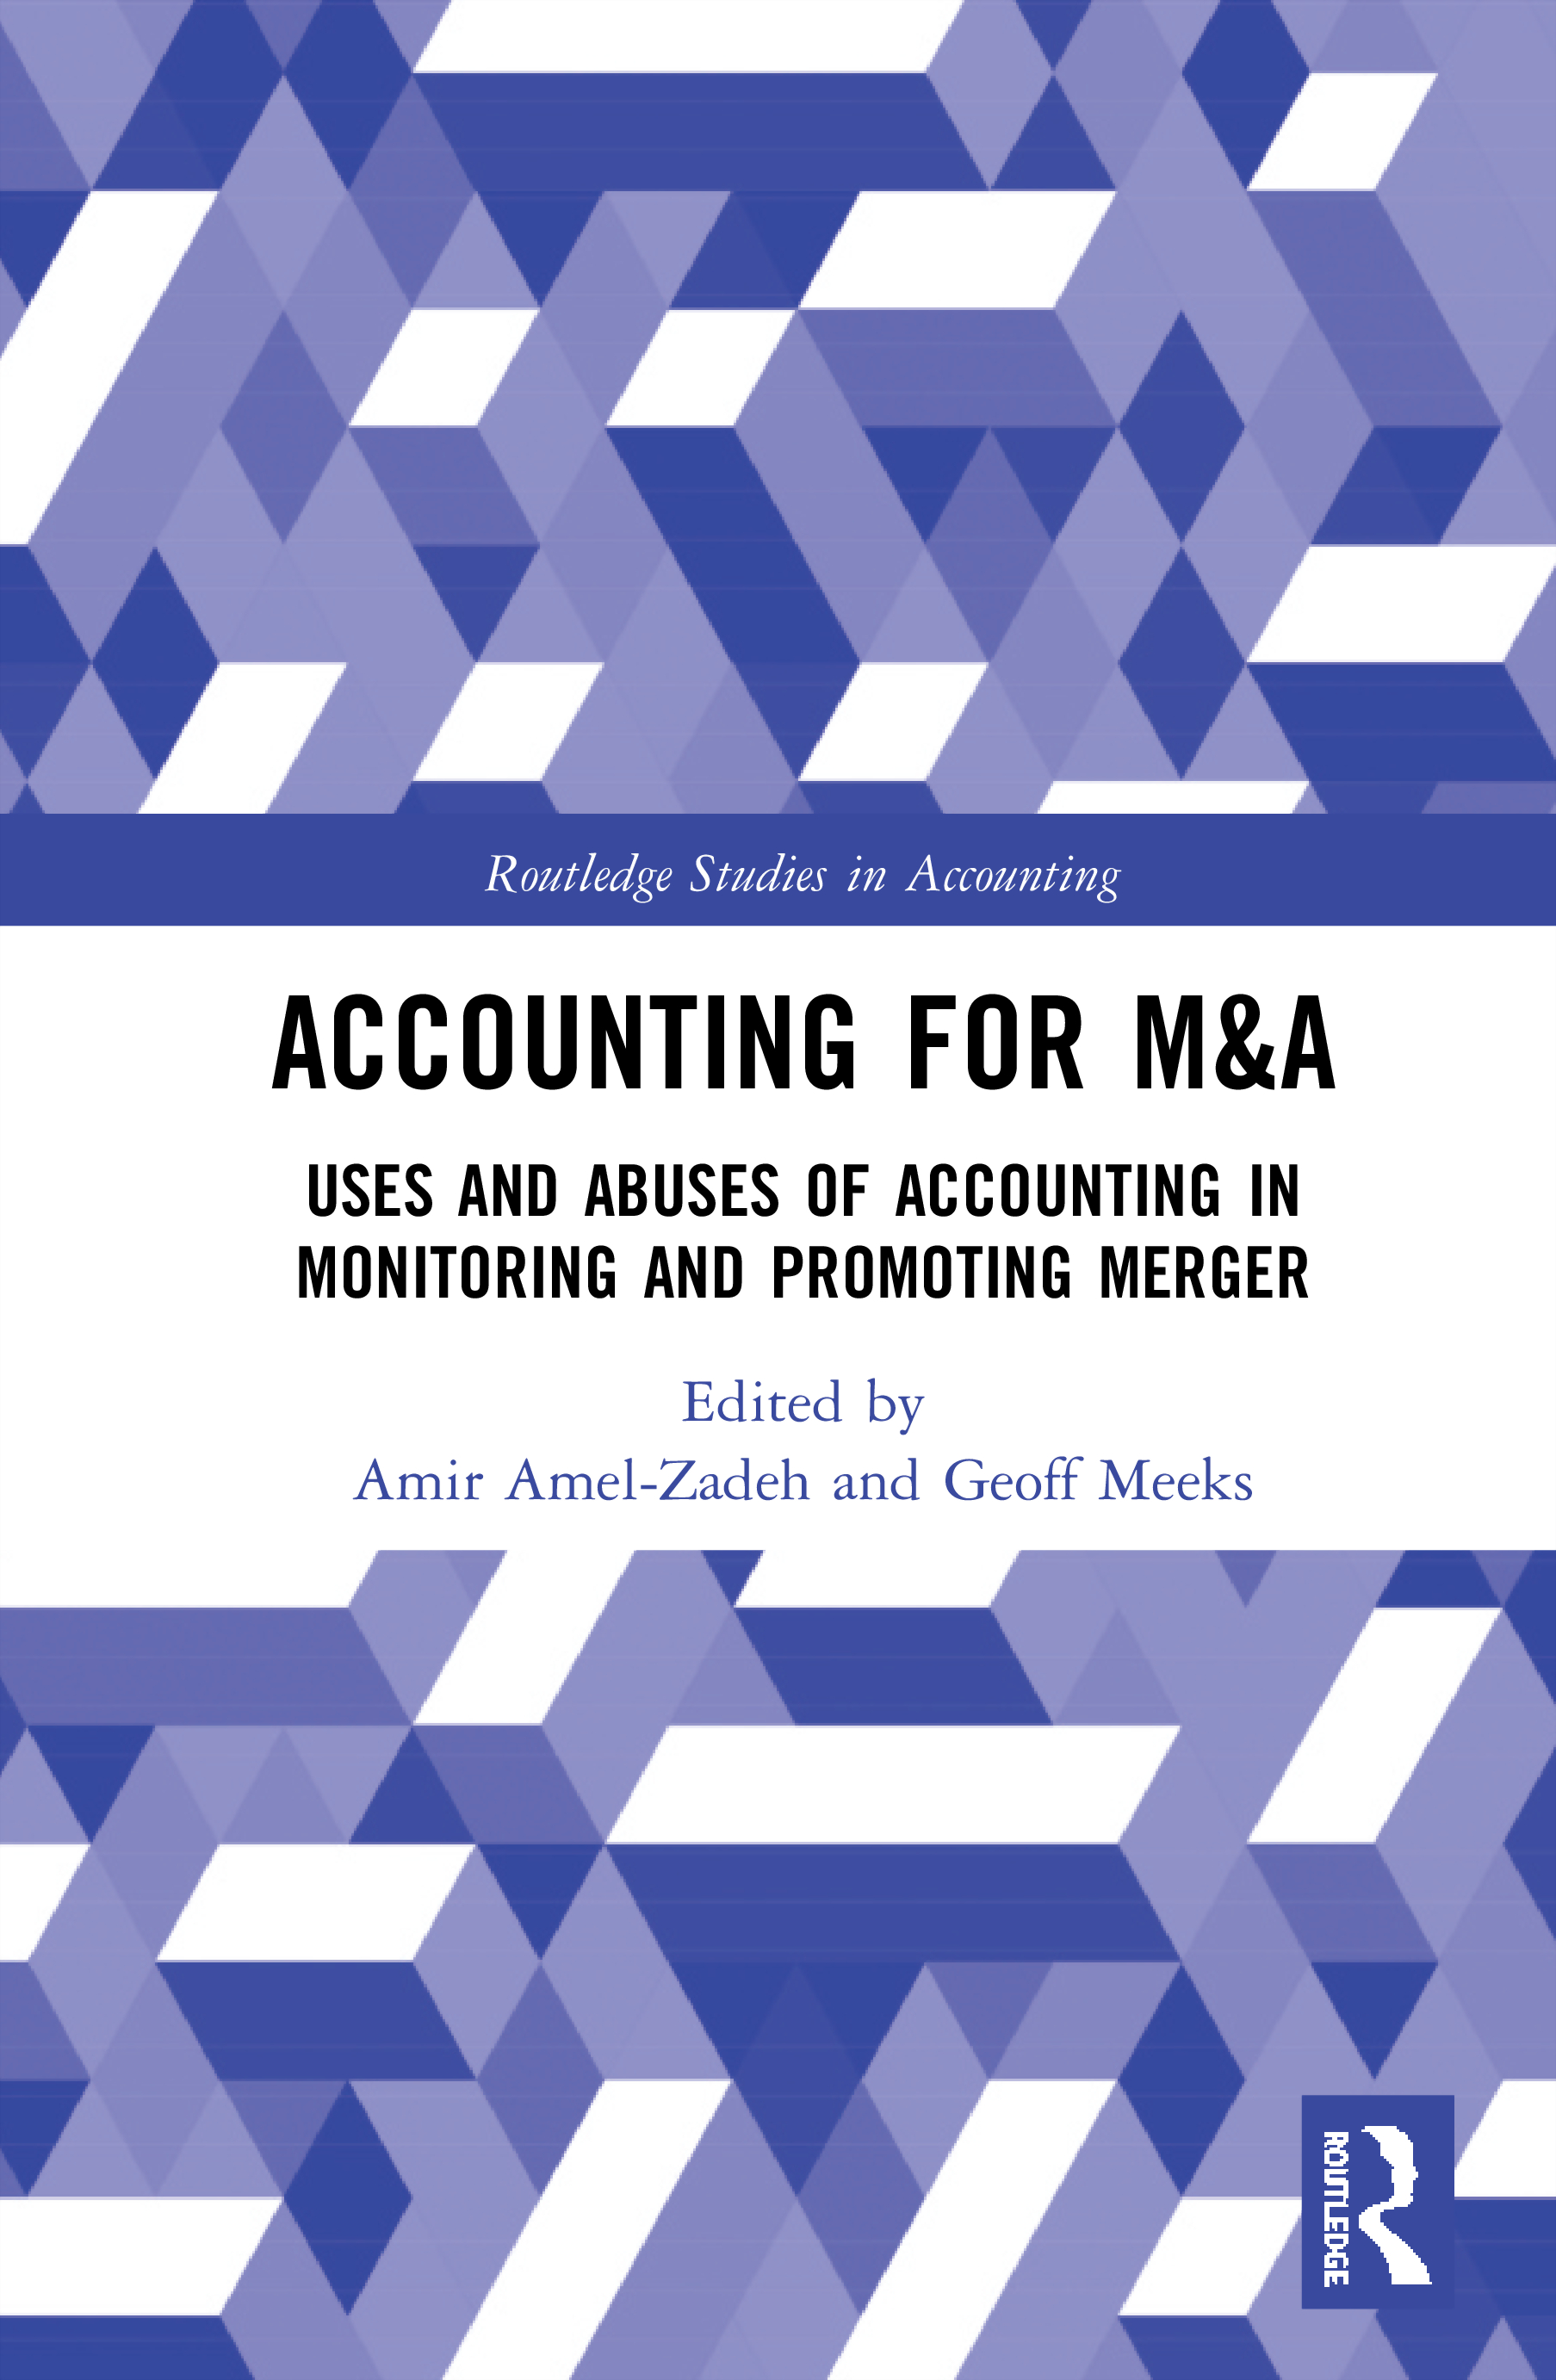 Accounting for M&A: Uses and Abuses of Accounting in Monitoring and Promoting Merger book cover